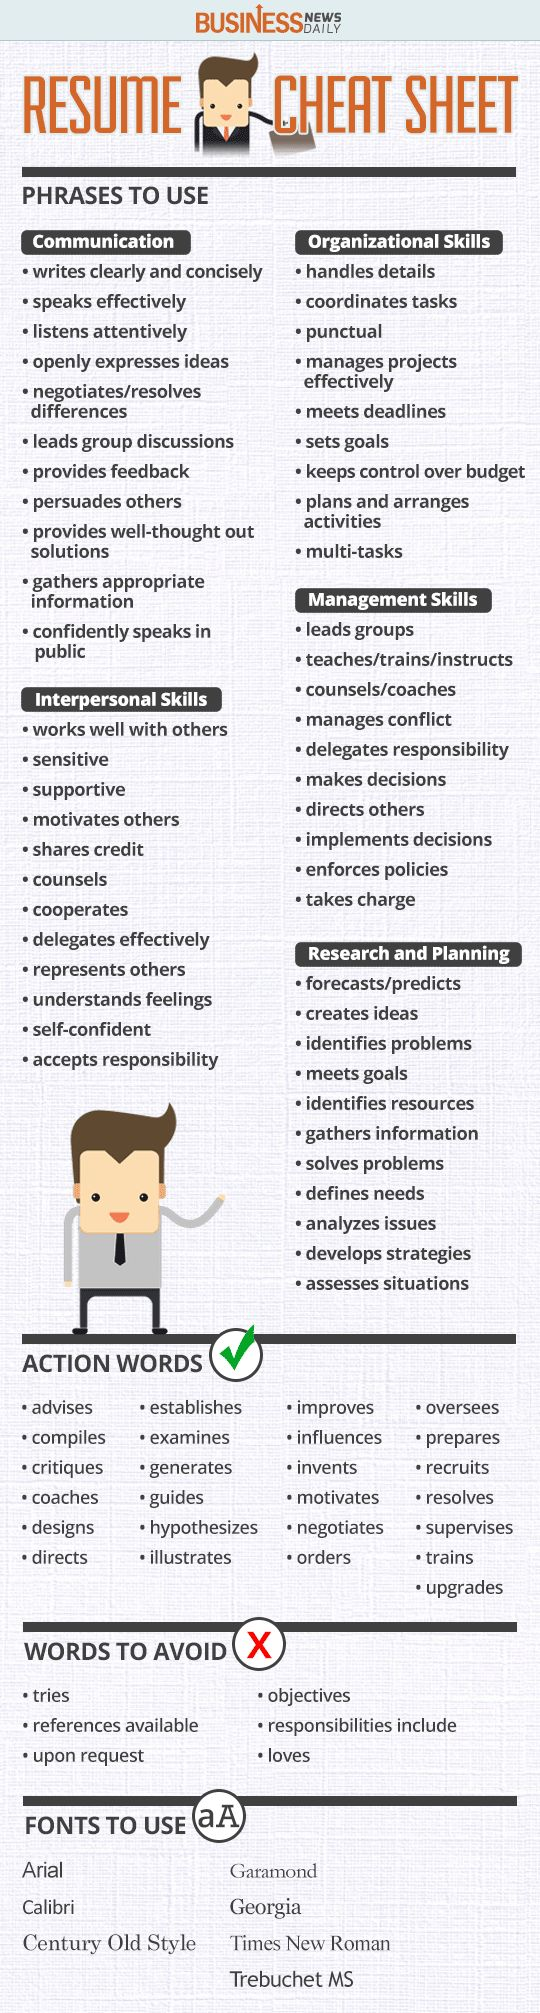 Opposenewapstandardsus  Sweet  Ideas About Resume On Pinterest  Cv Format Resume Cv And  With Excellent Resume Cheat Sheet Infographic Andrews Almost Done With A Complete Unit On Employment Which With Amusing First Year Teacher Resume Examples Also Er Rn Resume In Addition Sample It Manager Resume And Sample Accounts Payable Resume As Well As Resume Examples For Internships Additionally Unique Resume Template From Pinterestcom With Opposenewapstandardsus  Excellent  Ideas About Resume On Pinterest  Cv Format Resume Cv And  With Amusing Resume Cheat Sheet Infographic Andrews Almost Done With A Complete Unit On Employment Which And Sweet First Year Teacher Resume Examples Also Er Rn Resume In Addition Sample It Manager Resume From Pinterestcom